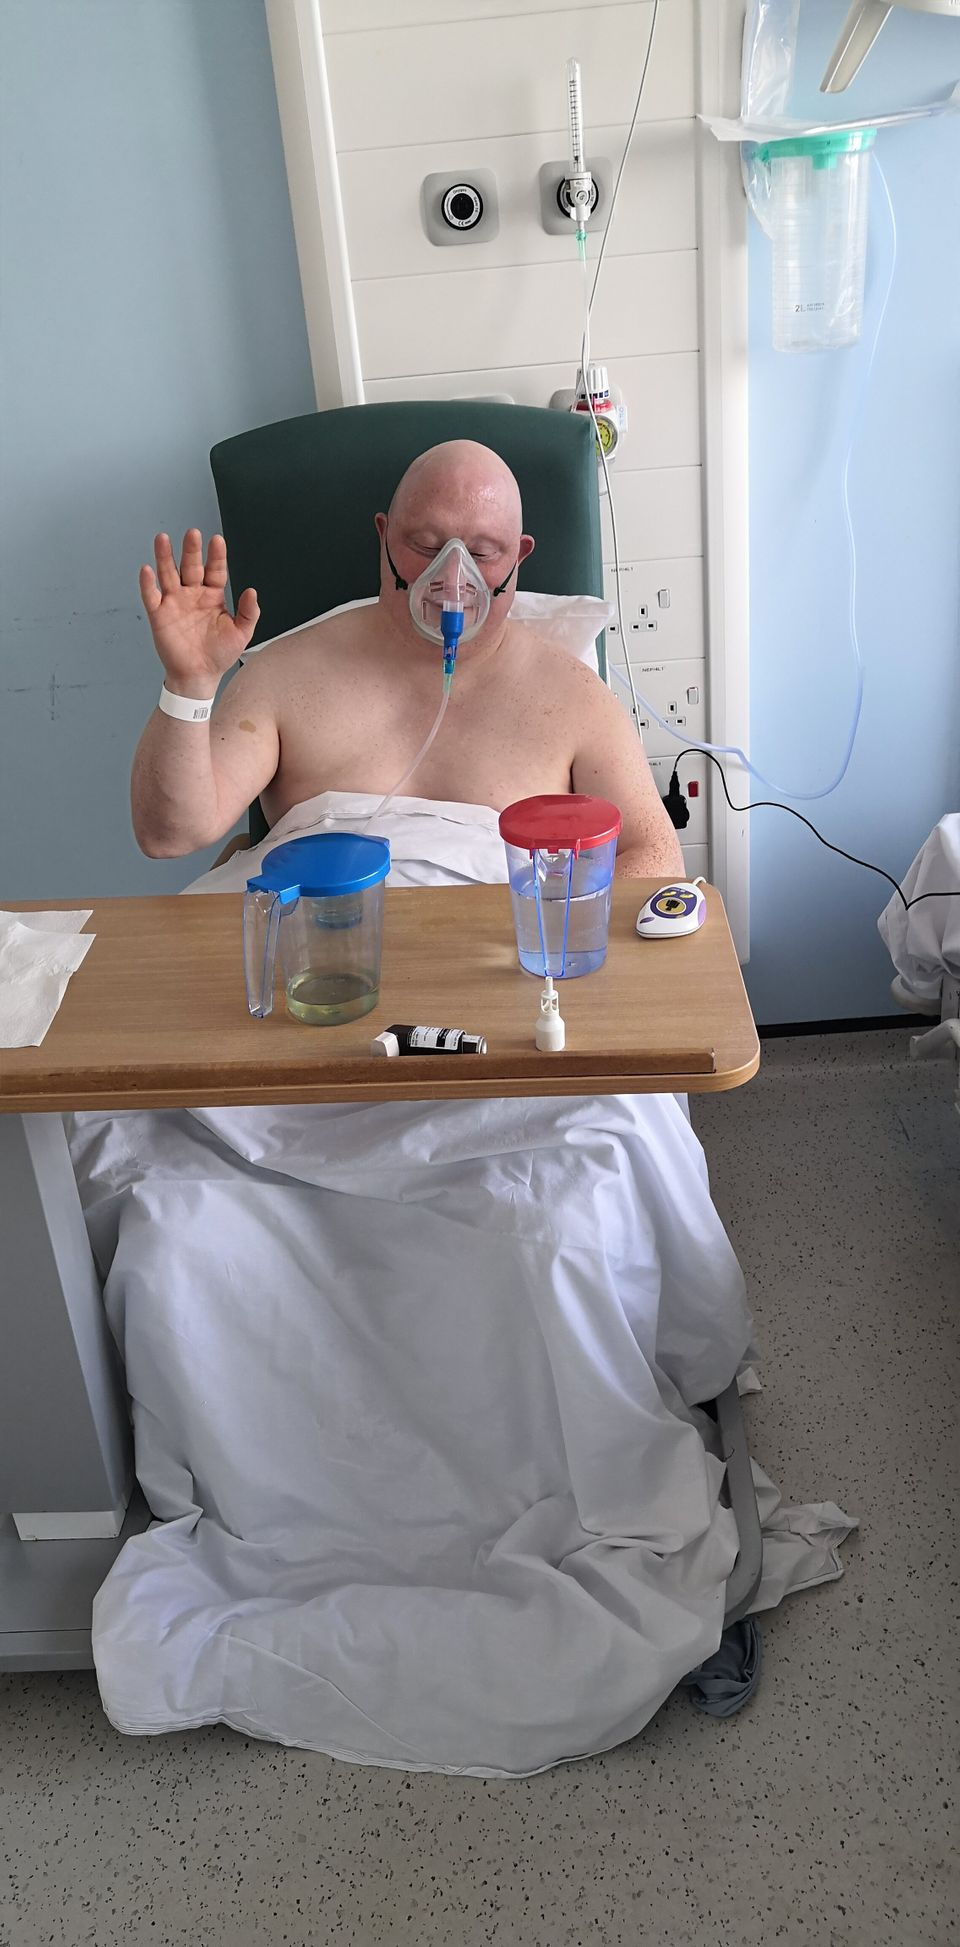 Steven, 43, has Down's syndrome and was admitted to hospital and tested positive. His father John...